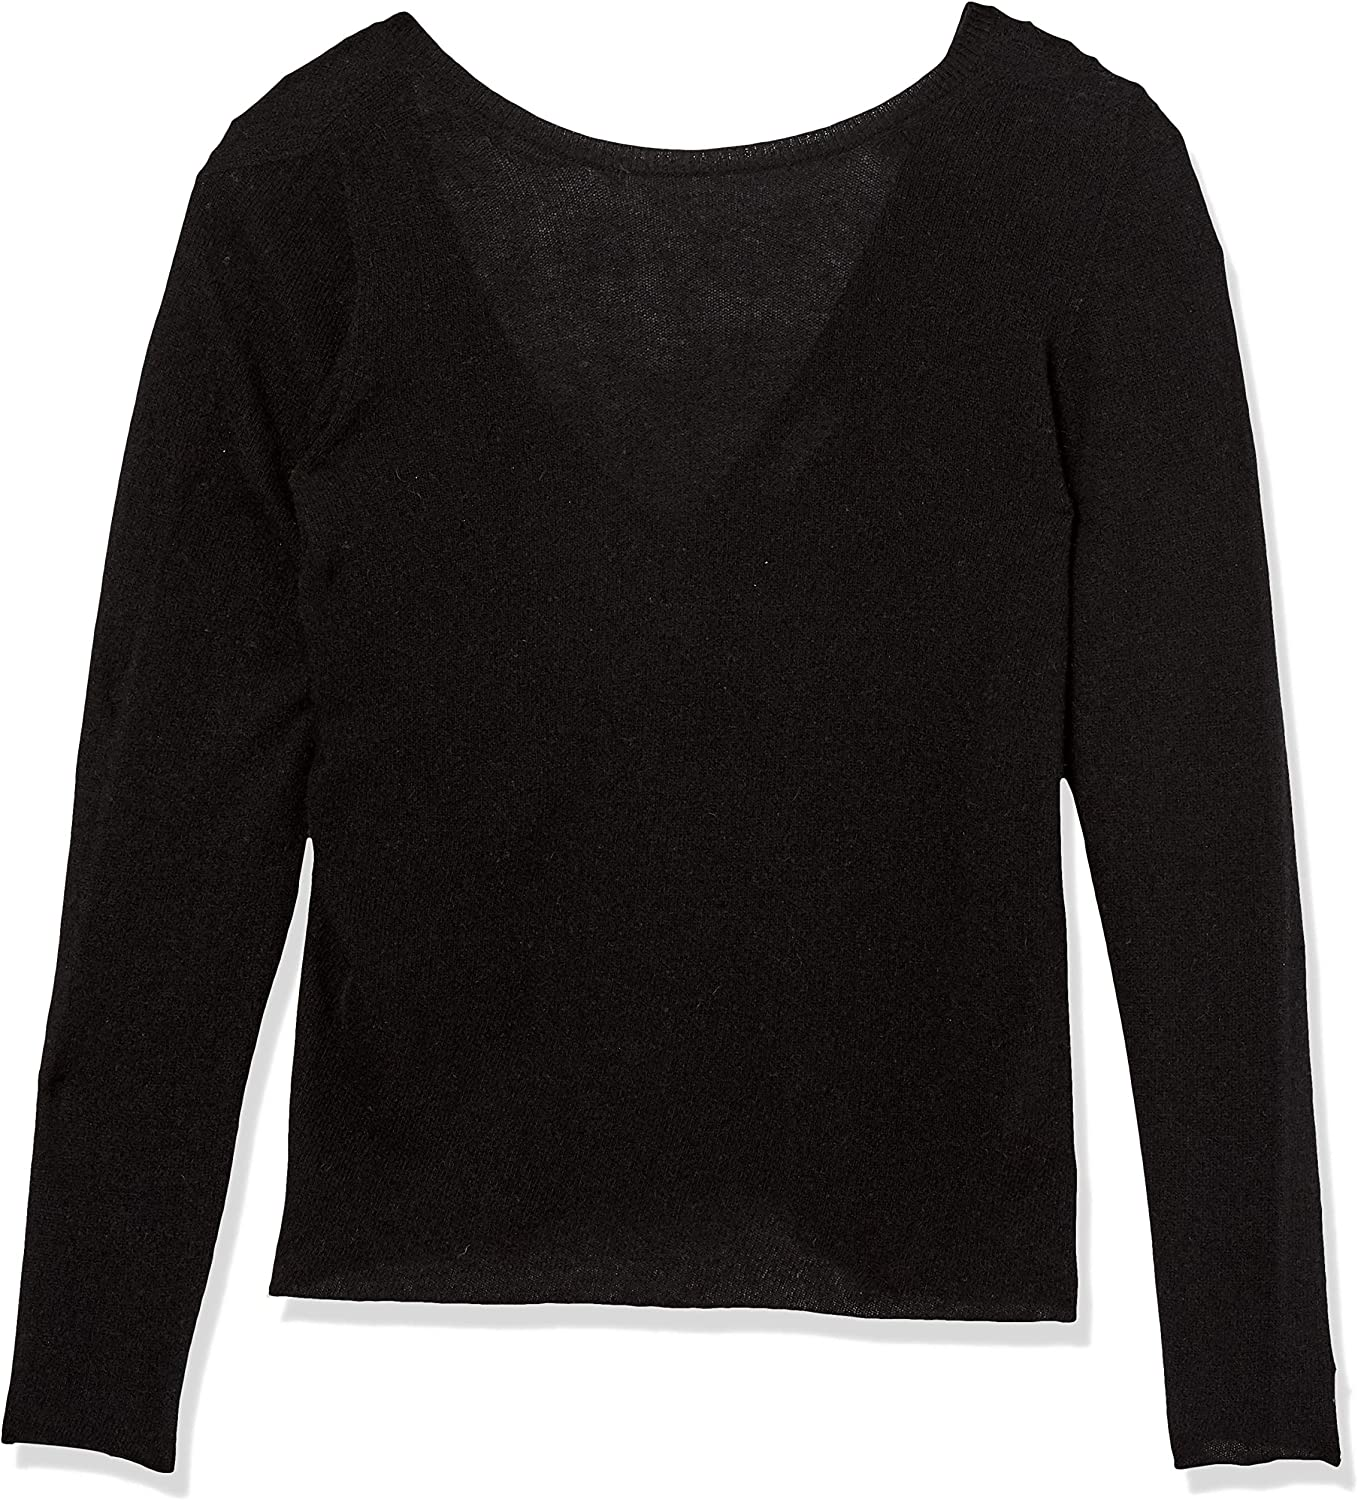 Majestic Filatures Womens Pullover Sweater